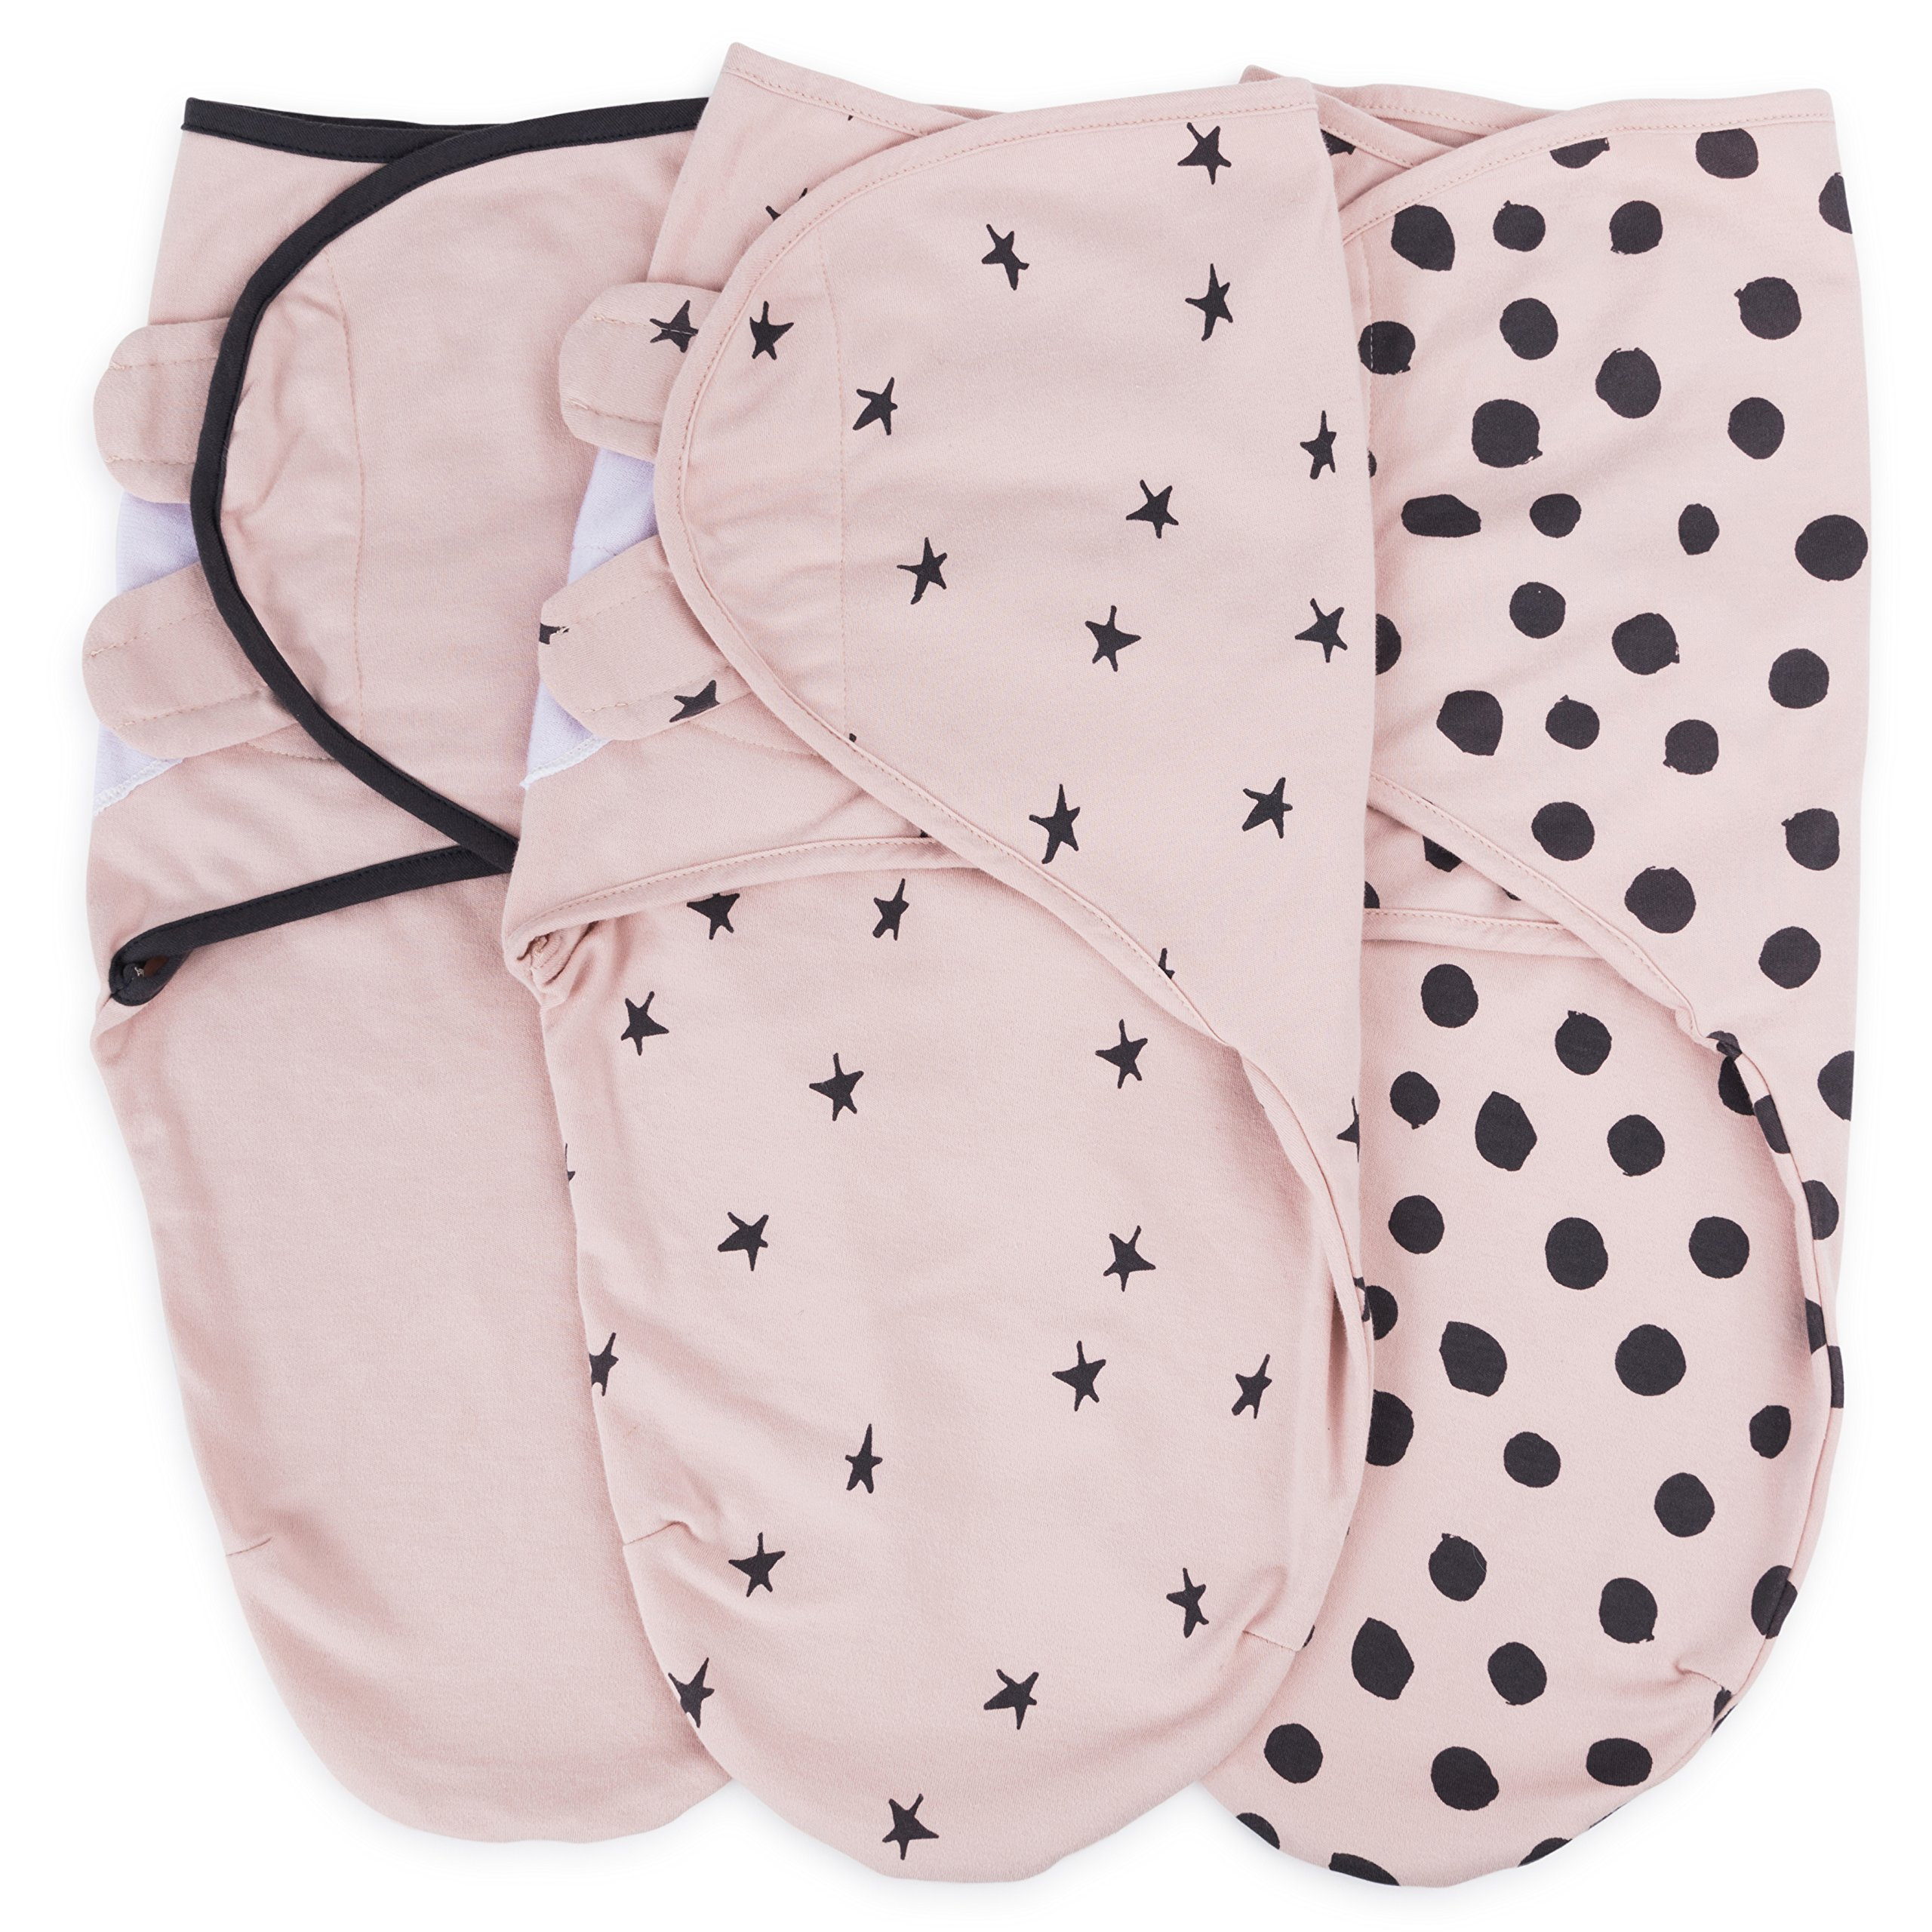 Adjustable Swaddle Blanket Infant Baby Wrap Set 3 Pack 0-3 Months by Ely's & Co. (Blush Pink, 0-3 Months)